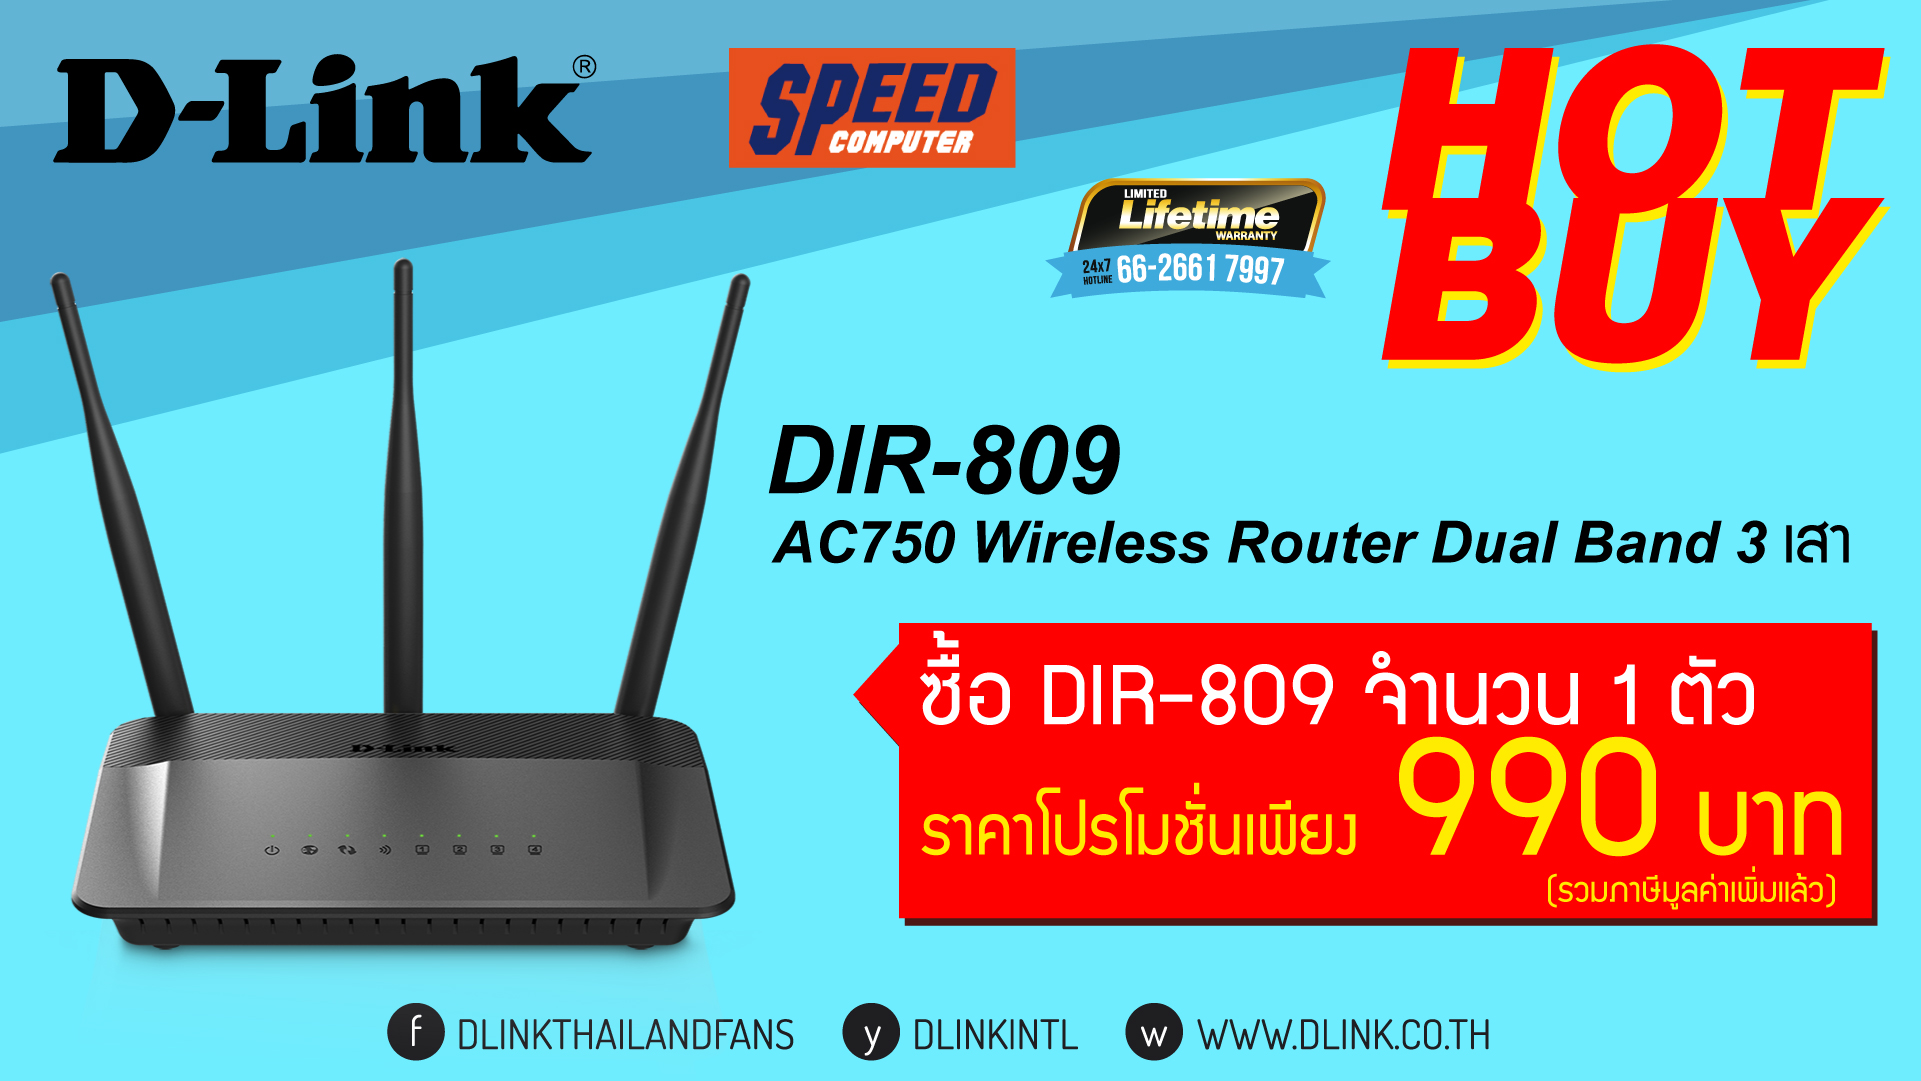 D-Link-Commart-Screen-for-Speed-March-16-11